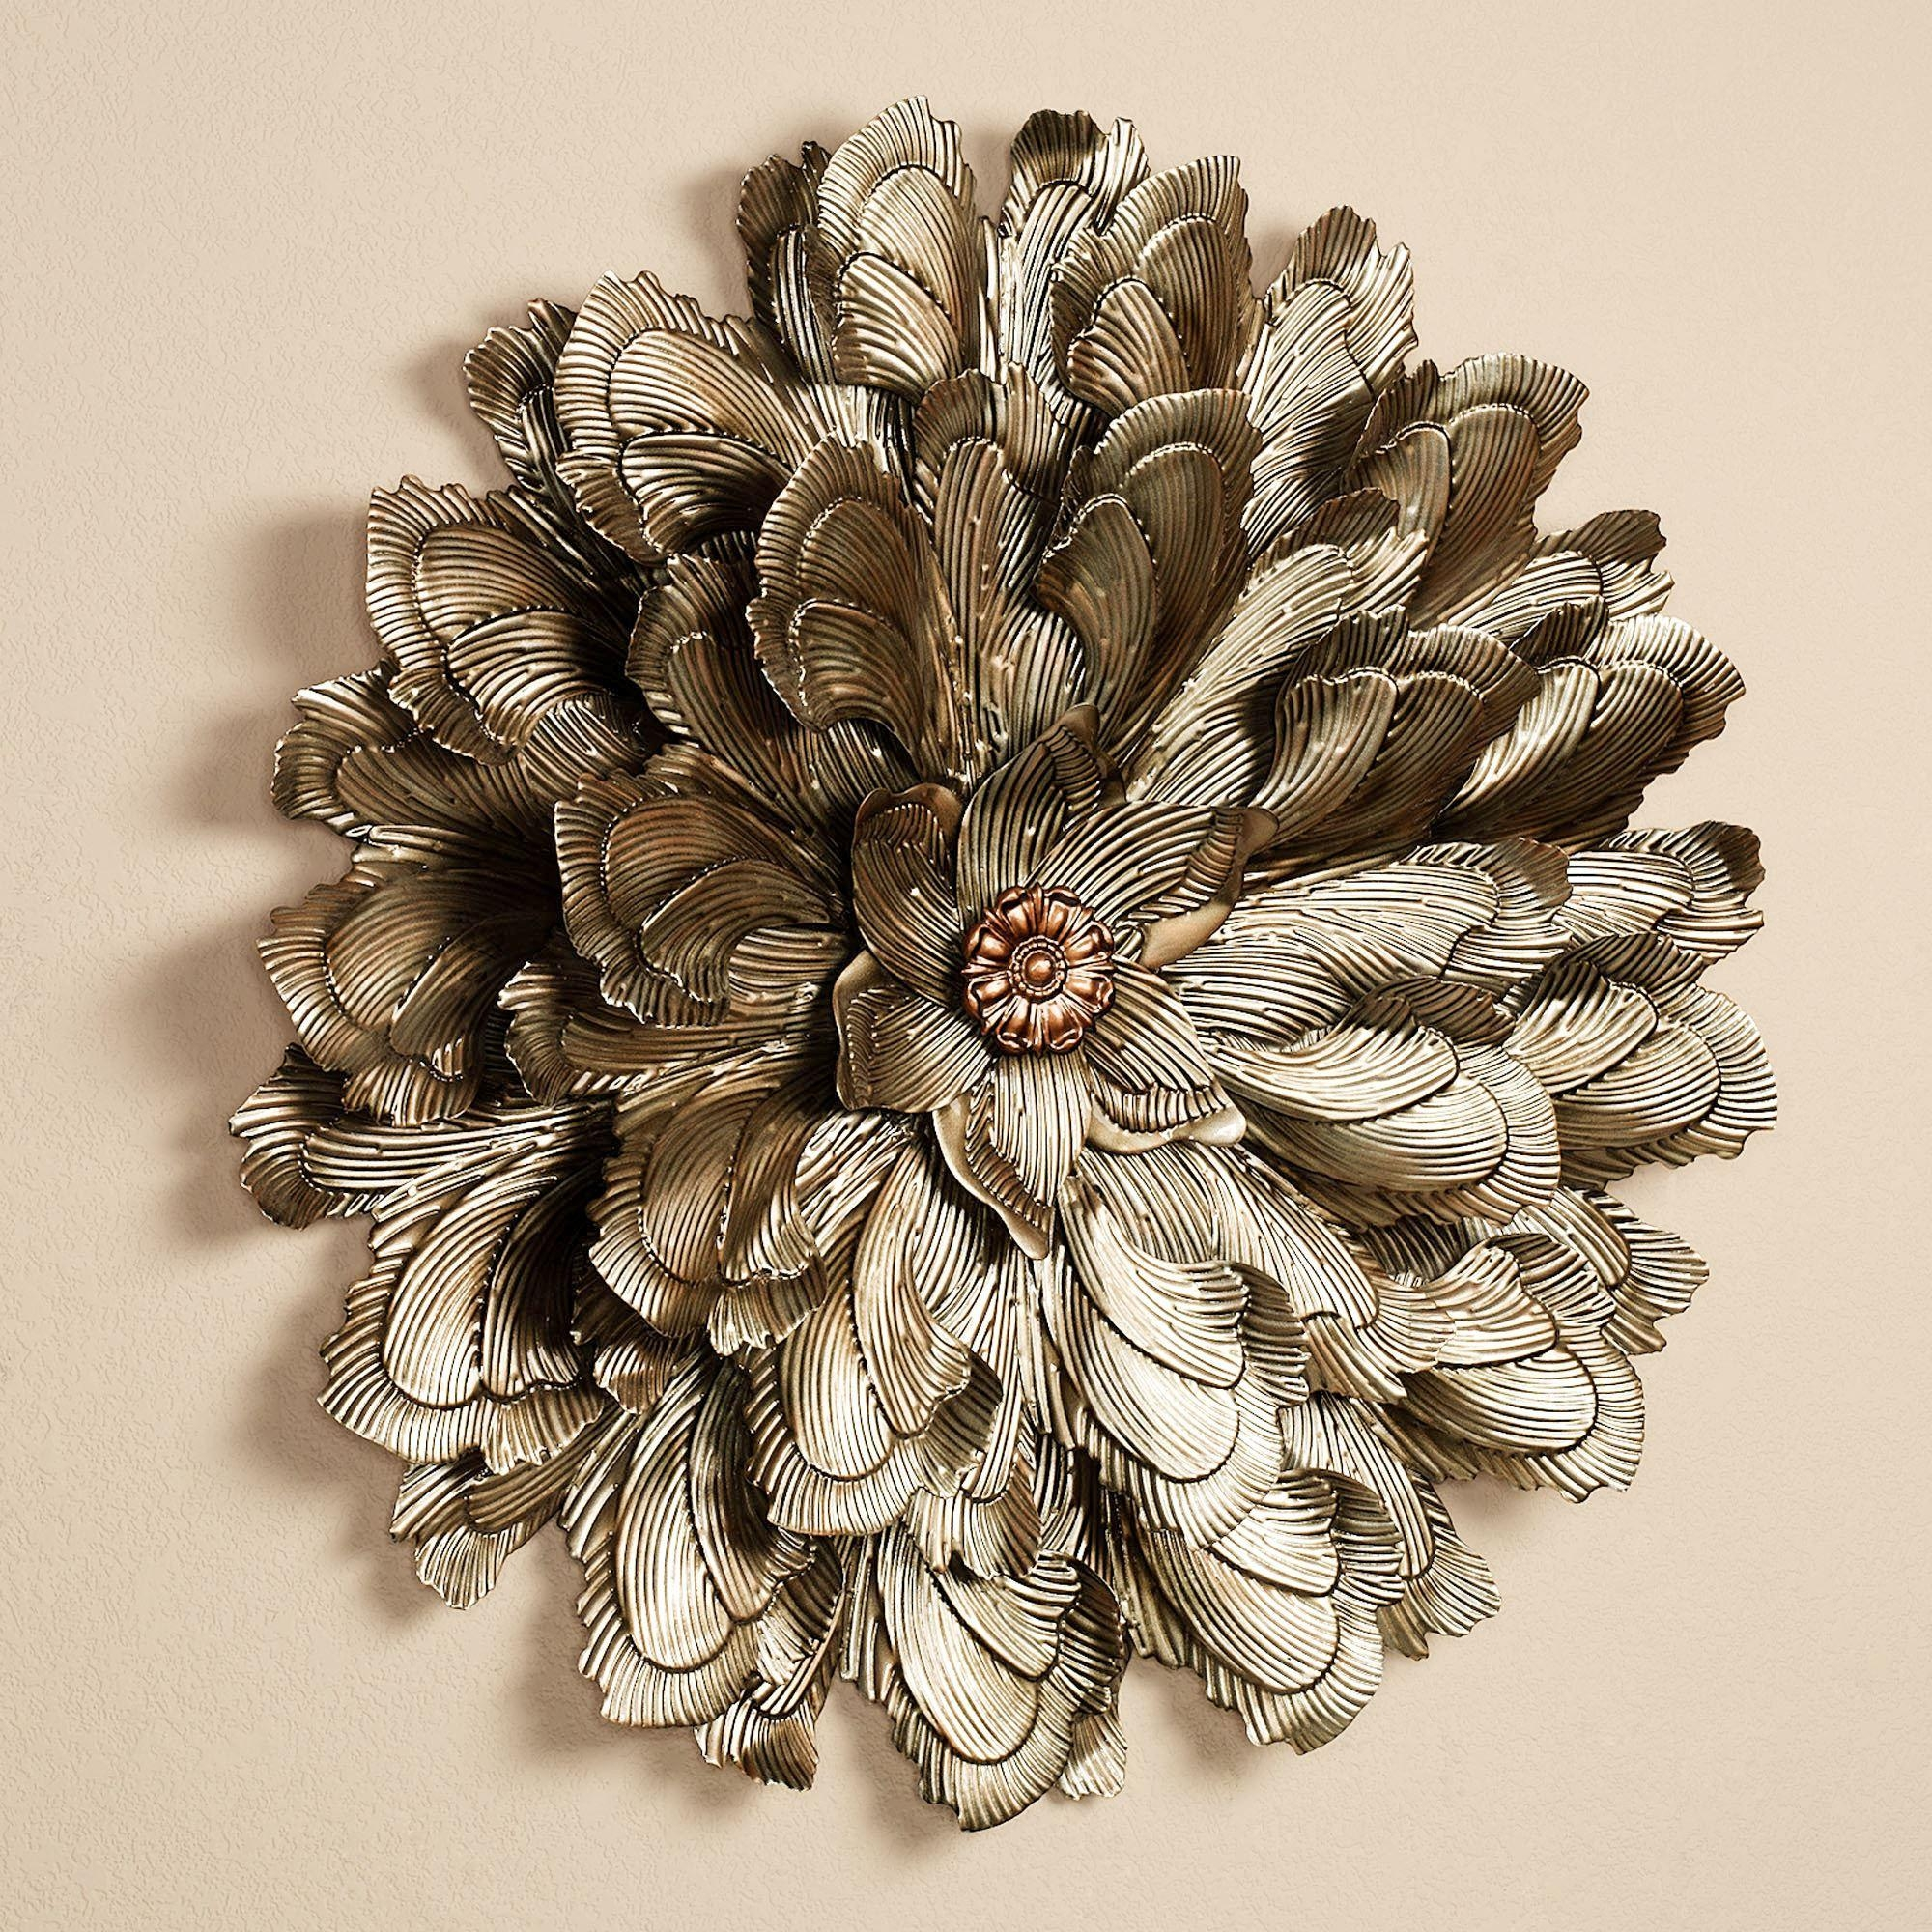 Adorable Living Room Metal Wall Art About Pure Art Willow Tree Of In Silver Metal Wall Art Flowers (Image 1 of 20)